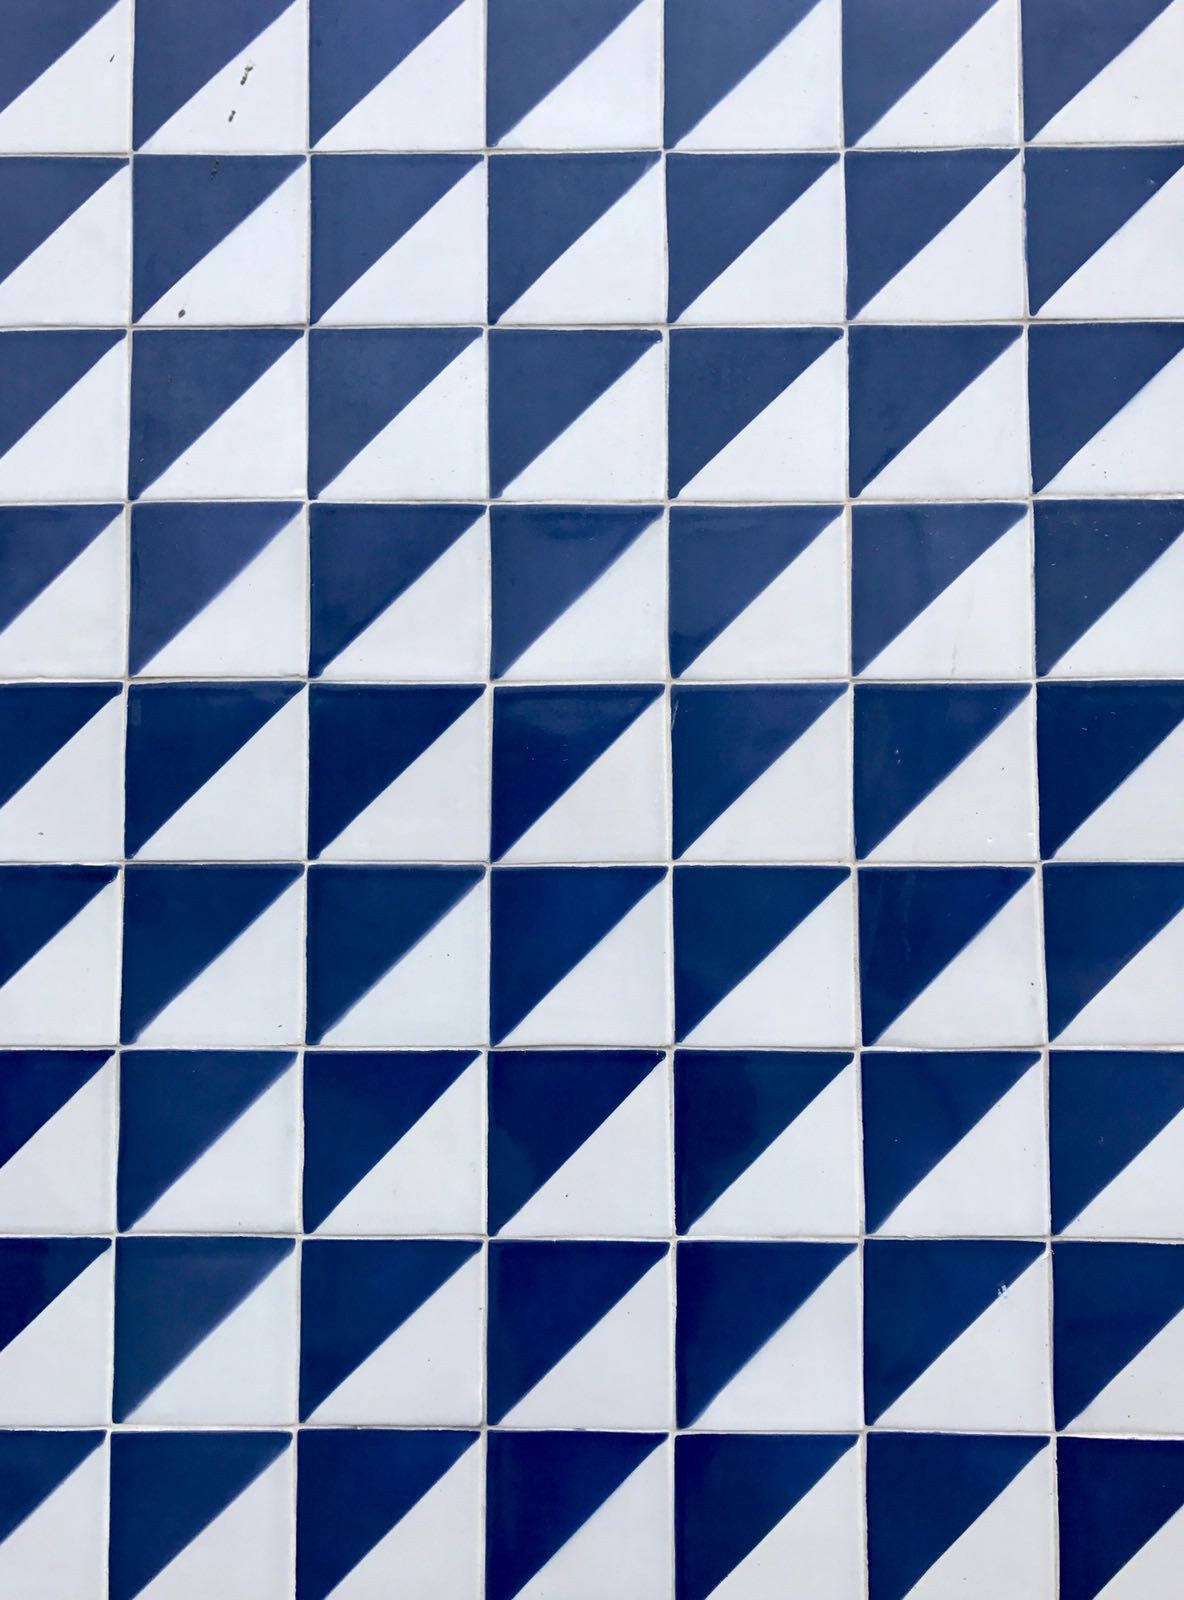 Wall of tiles split diagonally into blue and white sections